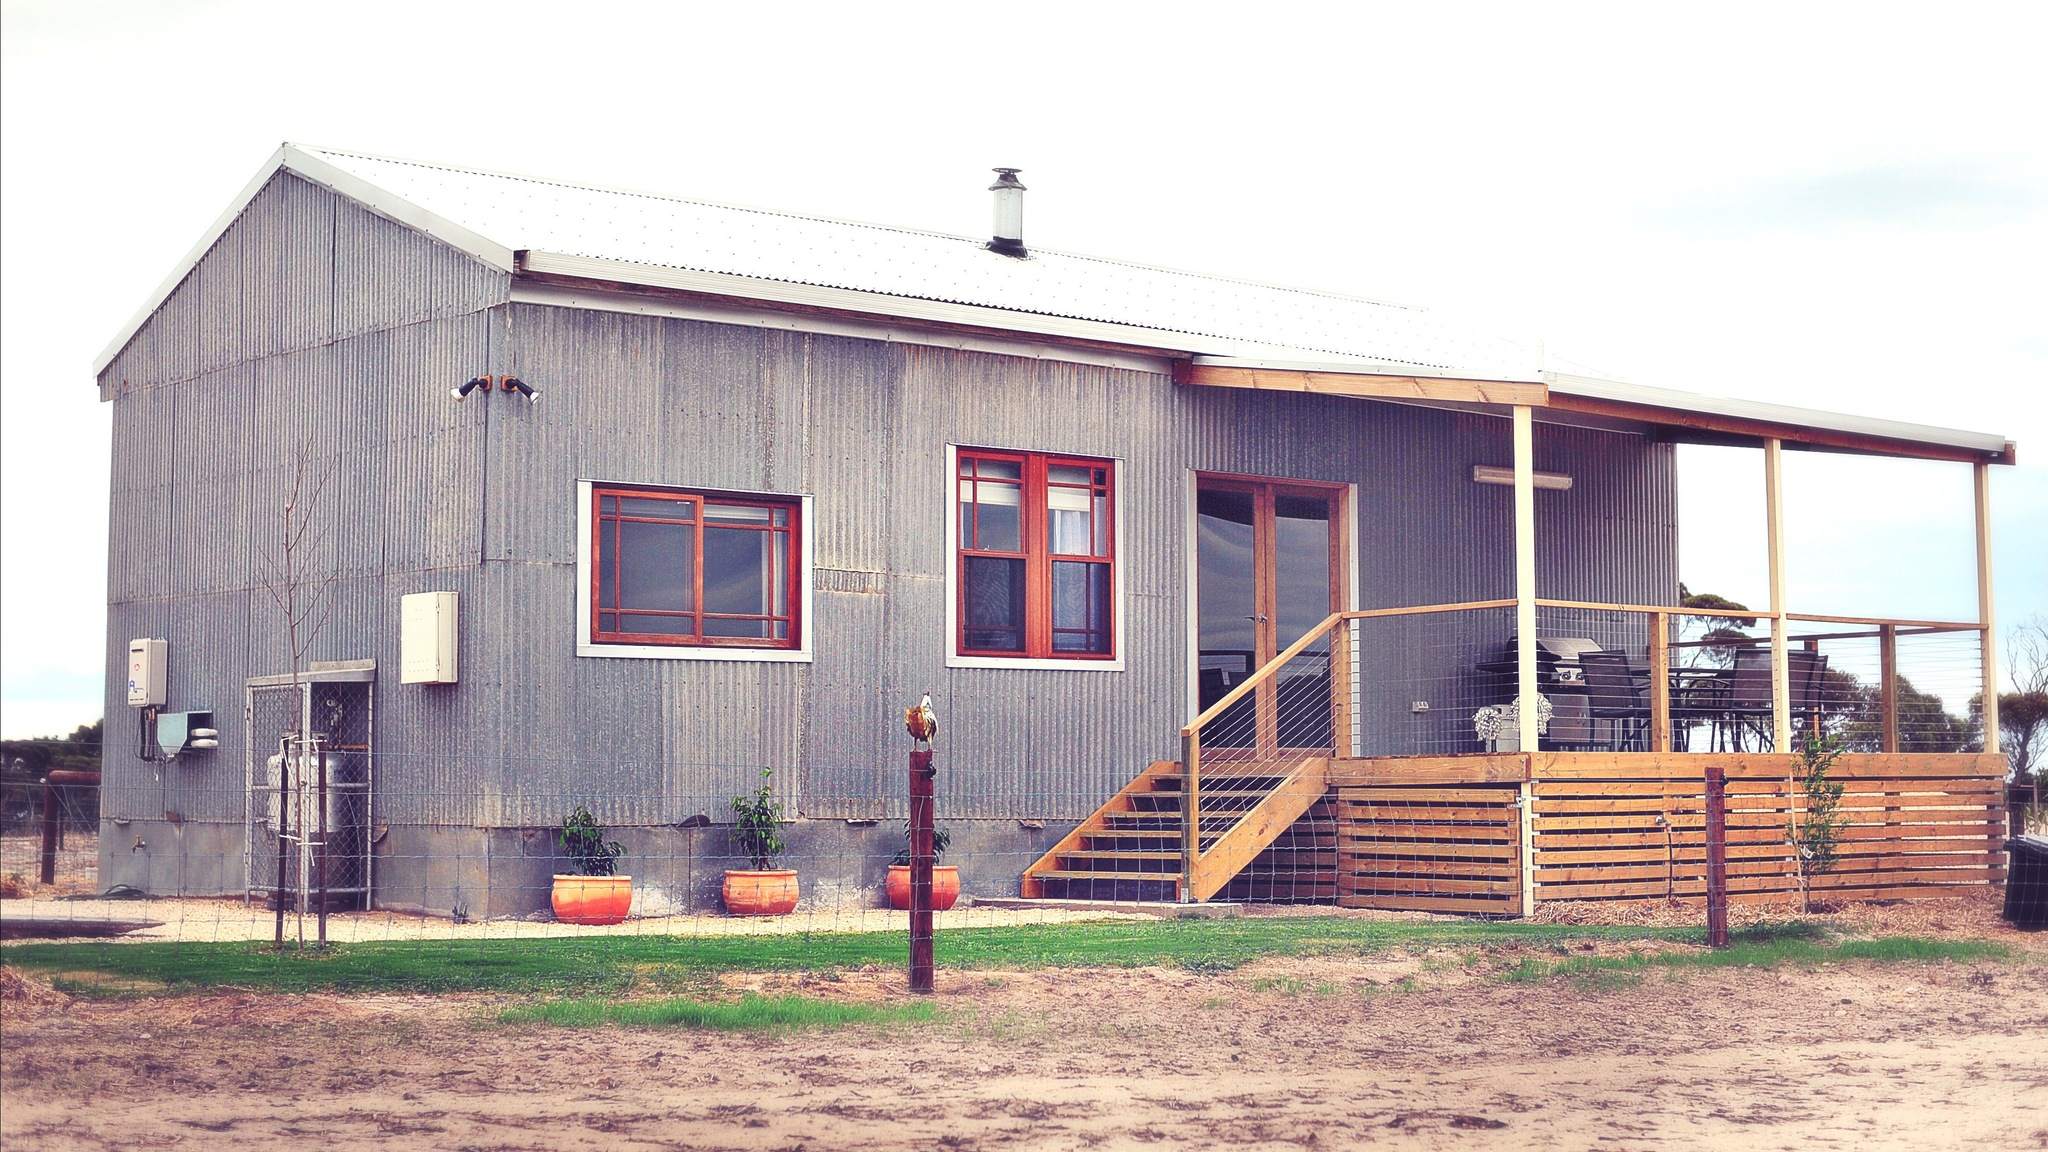 Redwing Barn Farmstay - Phillip Island Accommodation